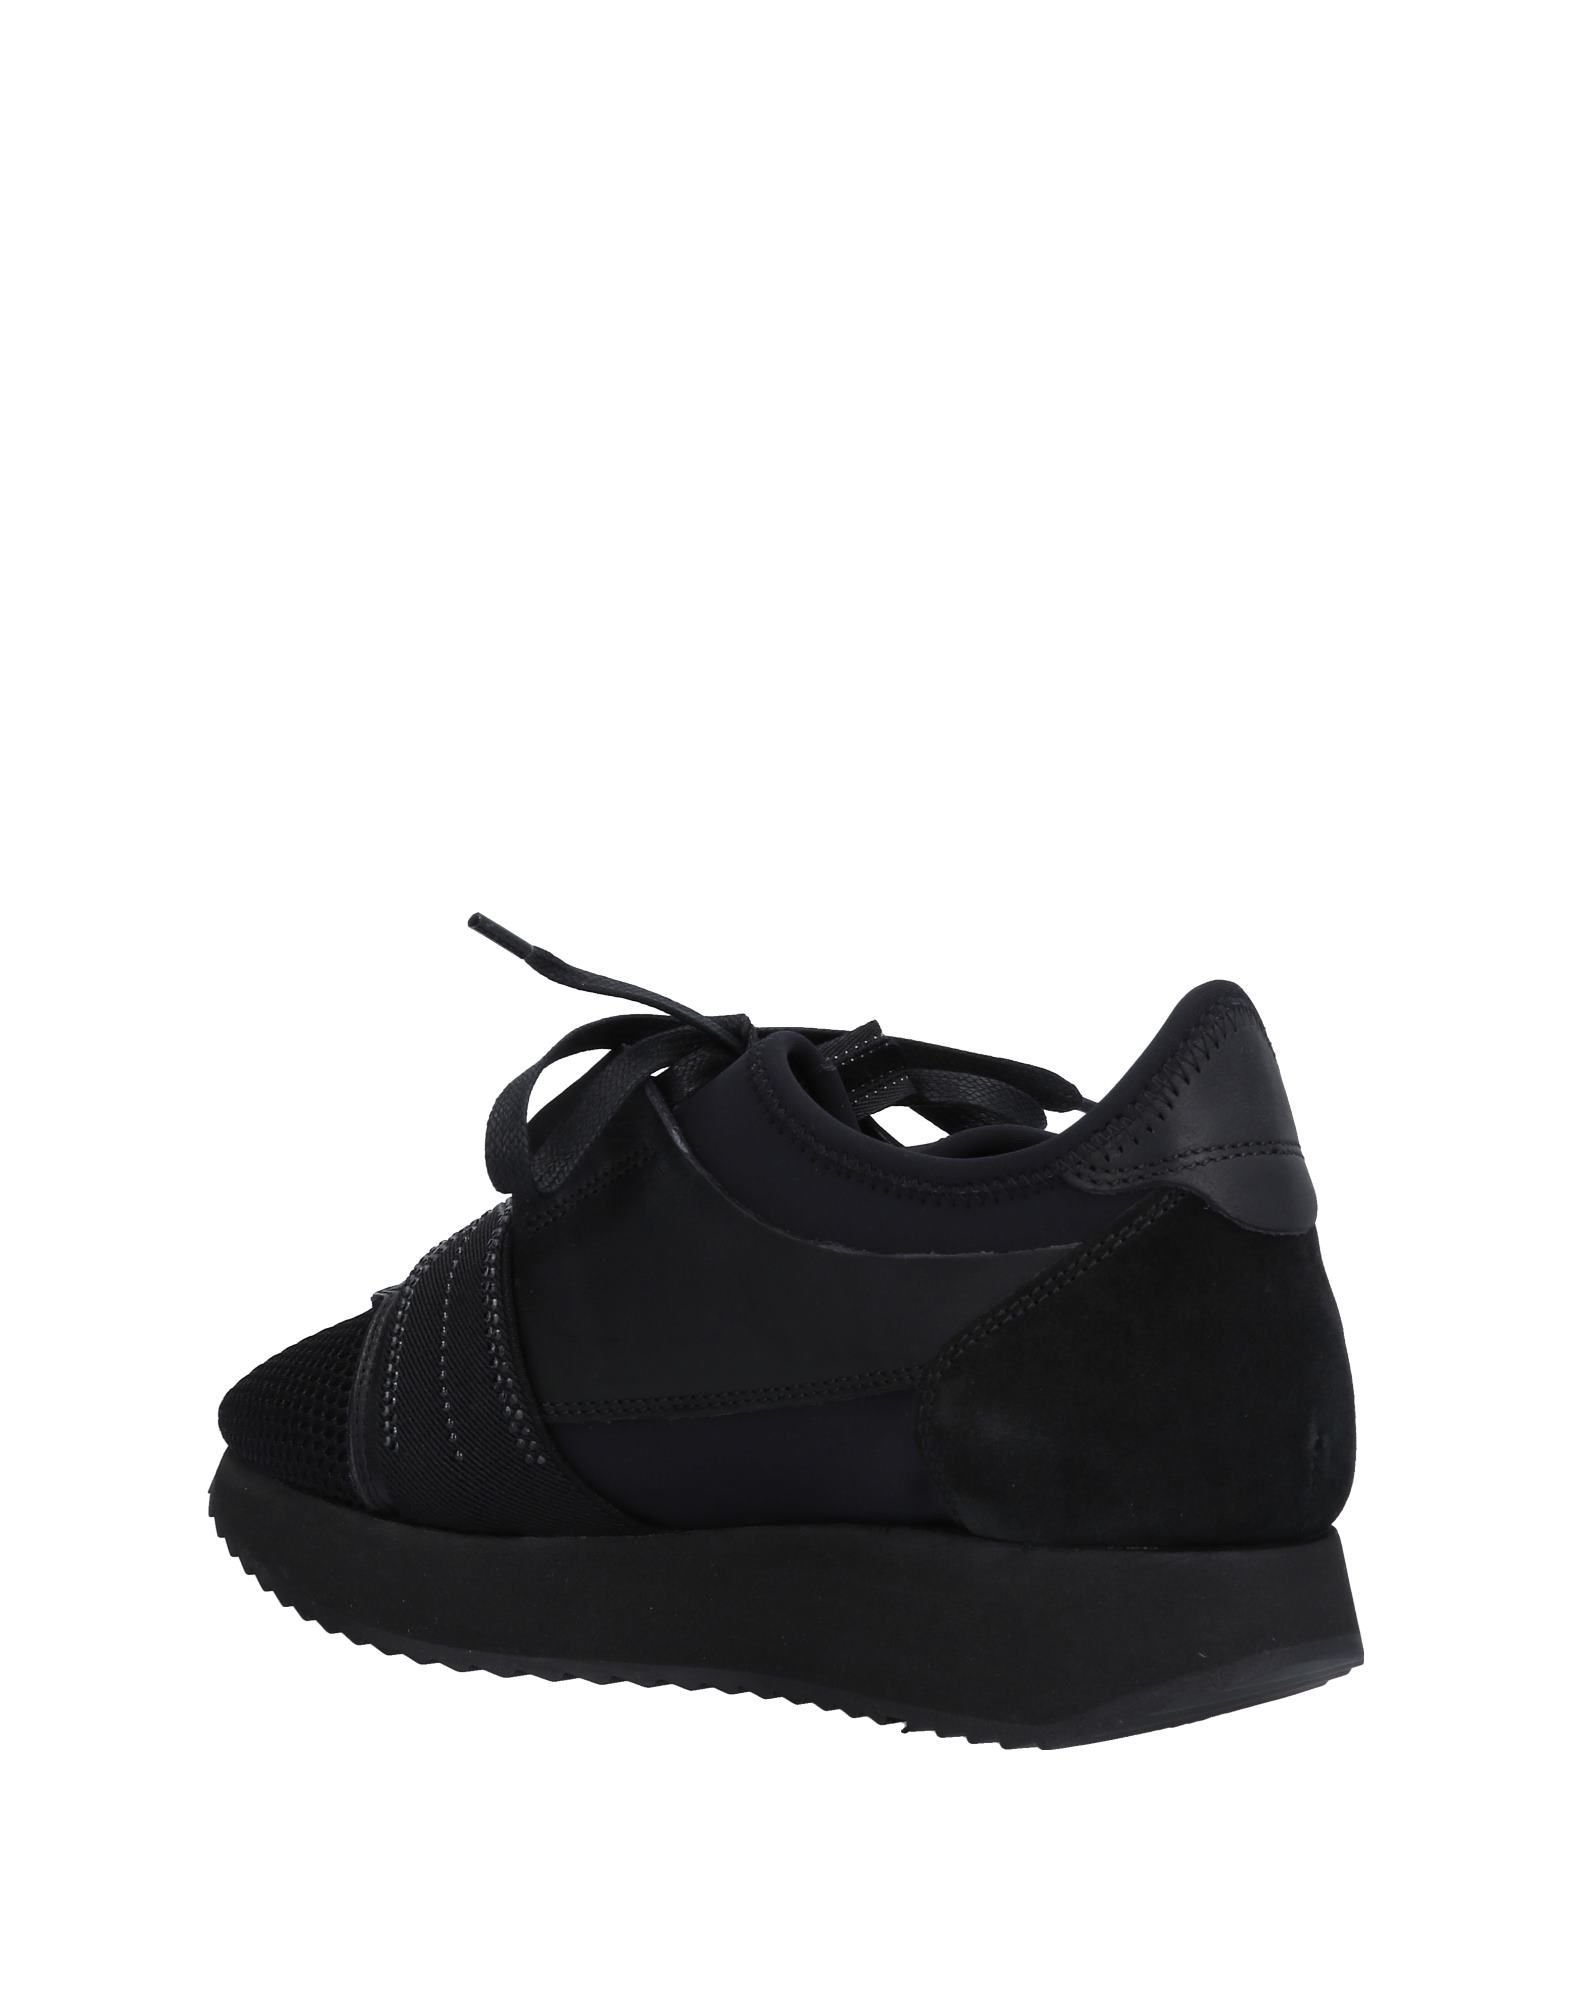 FOOTWEAR High By Claire Campbell Black Woman Textile fibres